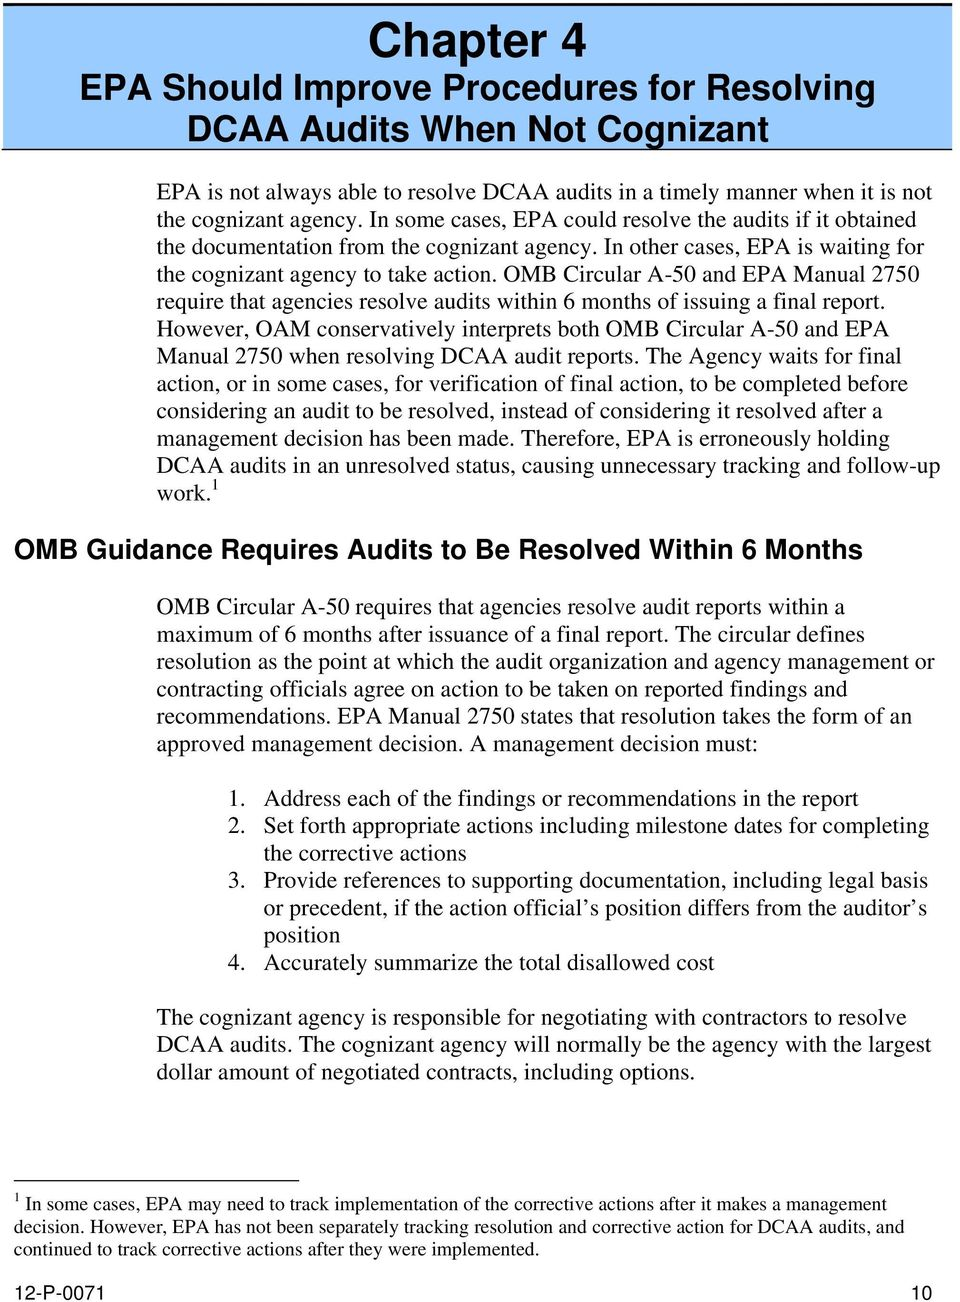 OMB Circular A-50 and EPA Manual 2750 require that agencies resolve audits within 6 months of issuing a final report.